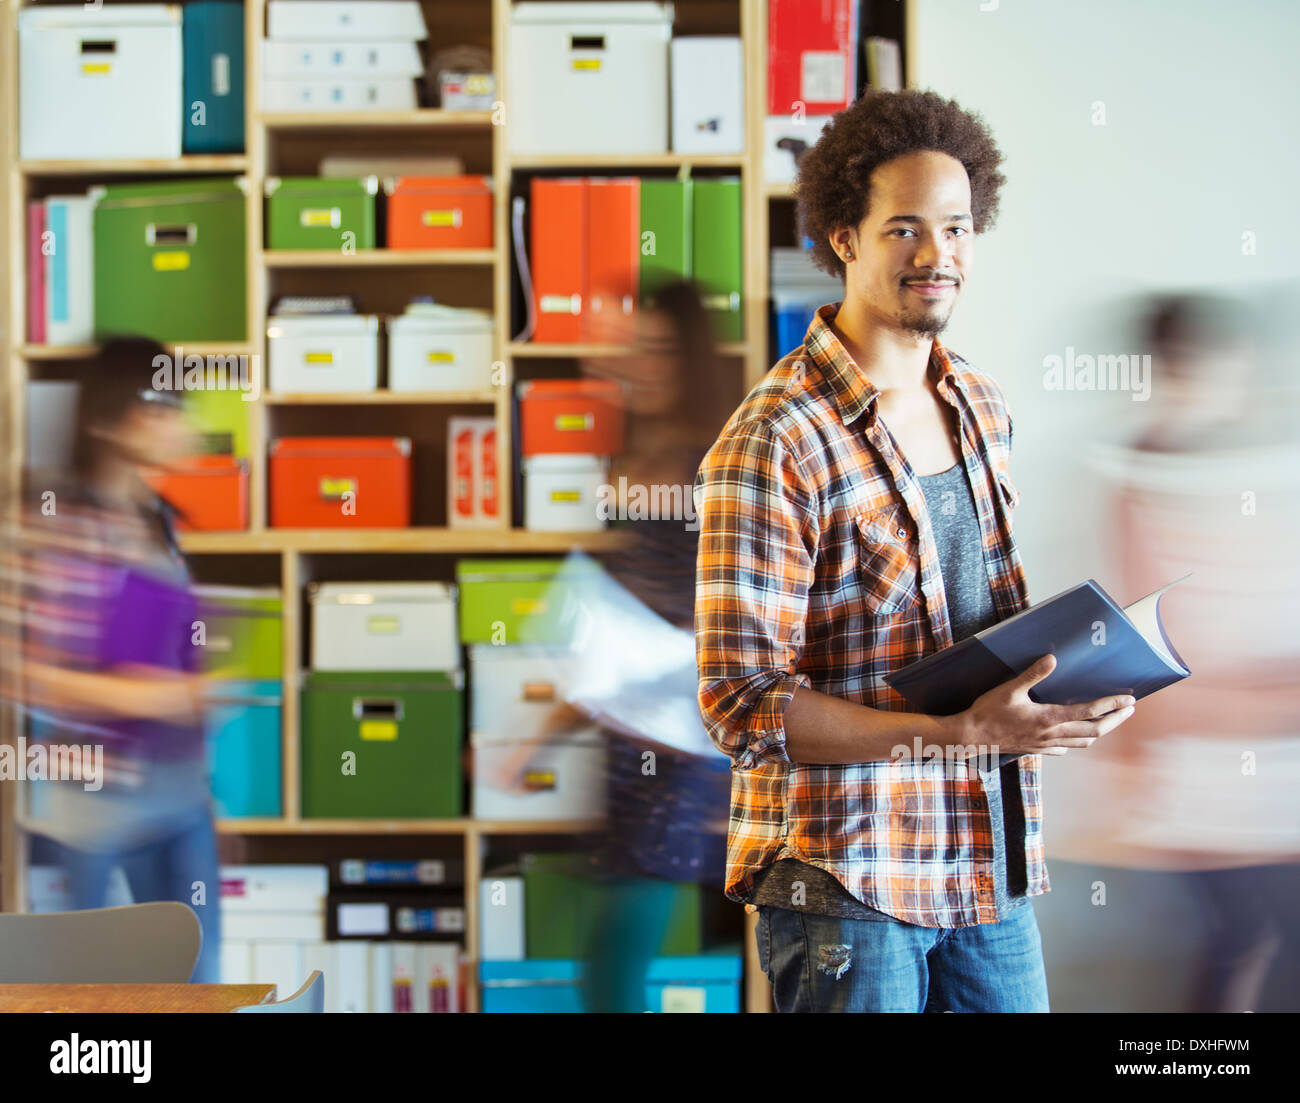 Portrait of casual businessman with co-workers rushing by in background - Stock Image